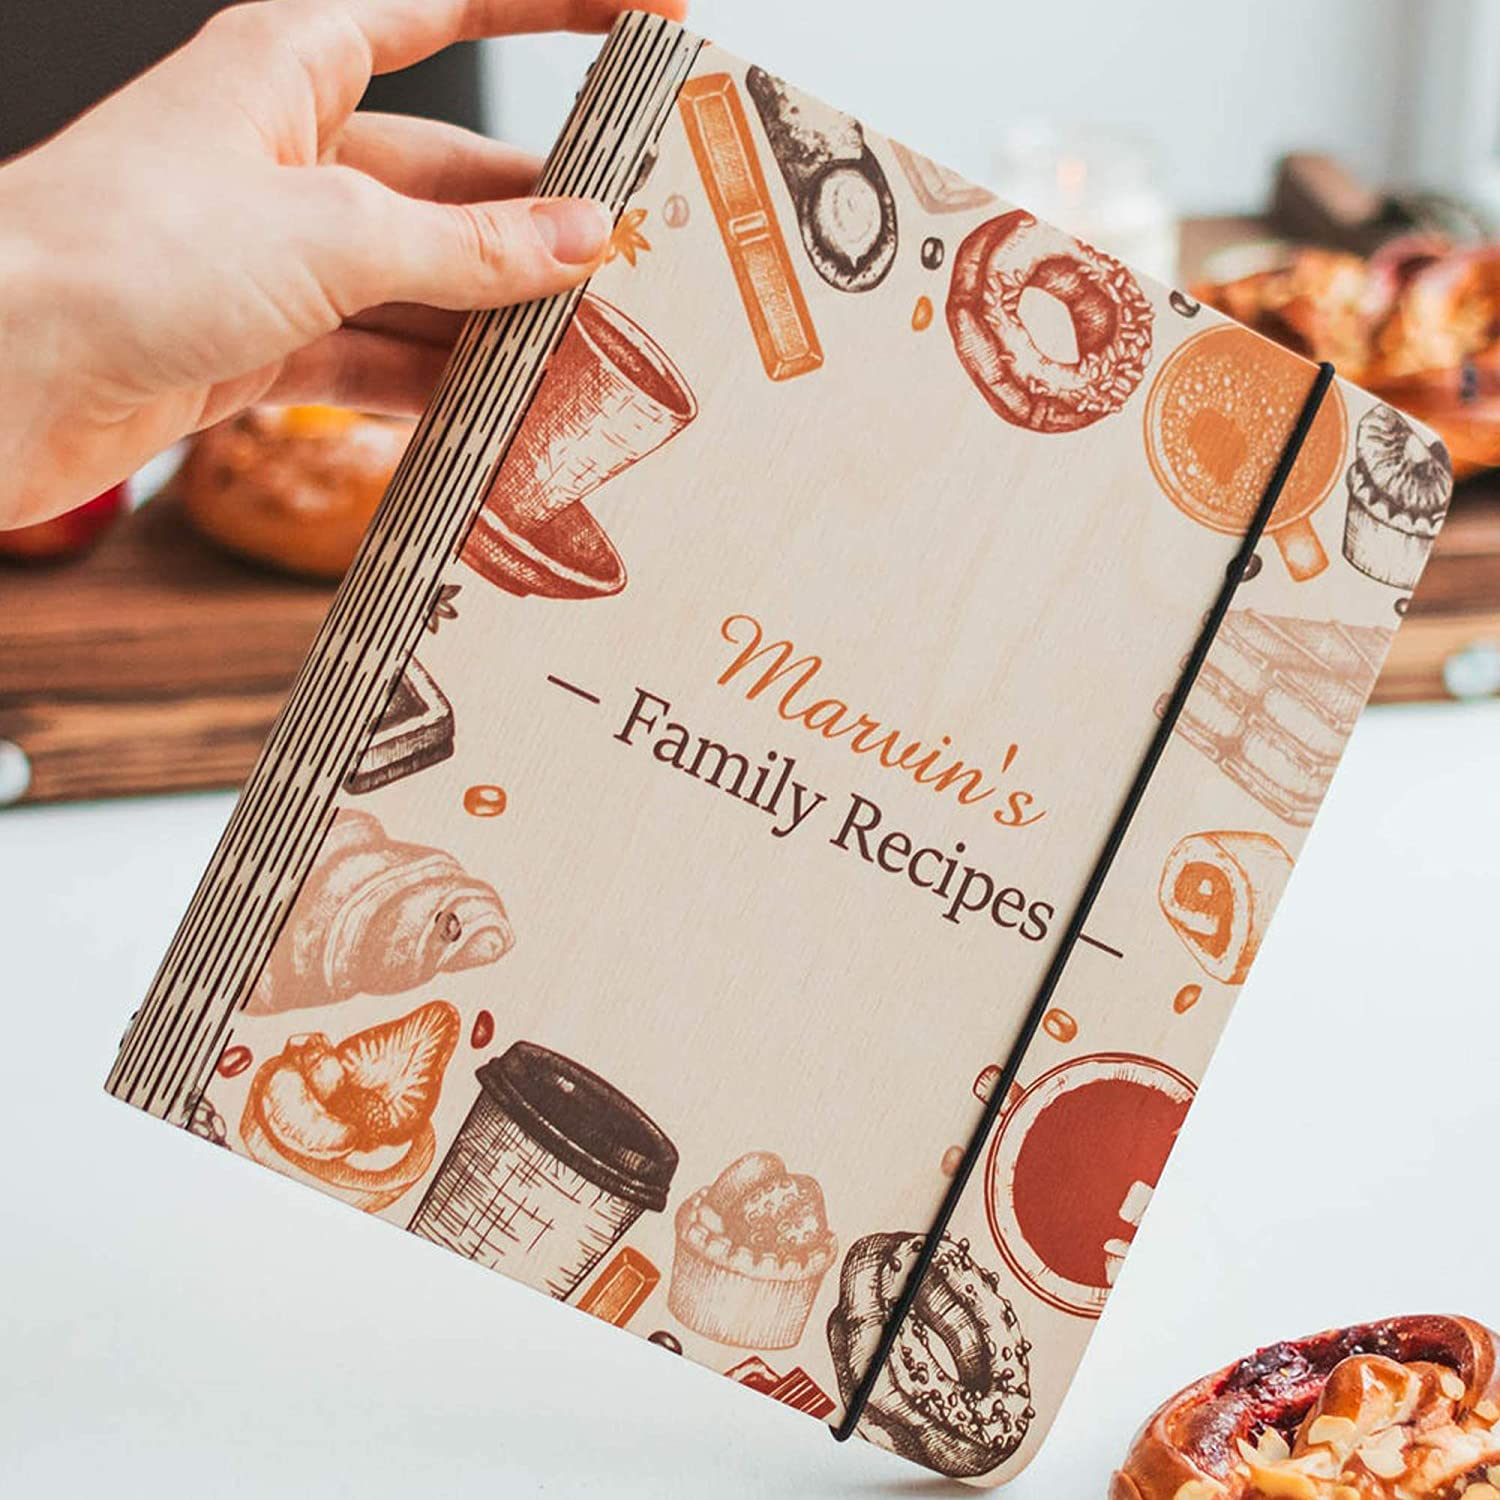 Family Cookbook Custom Sketchbook To Write In Organizer by Enjoy The Wood Personalized Recipe Notebook with printings Wooden Blank Recipe Book Binder Journal